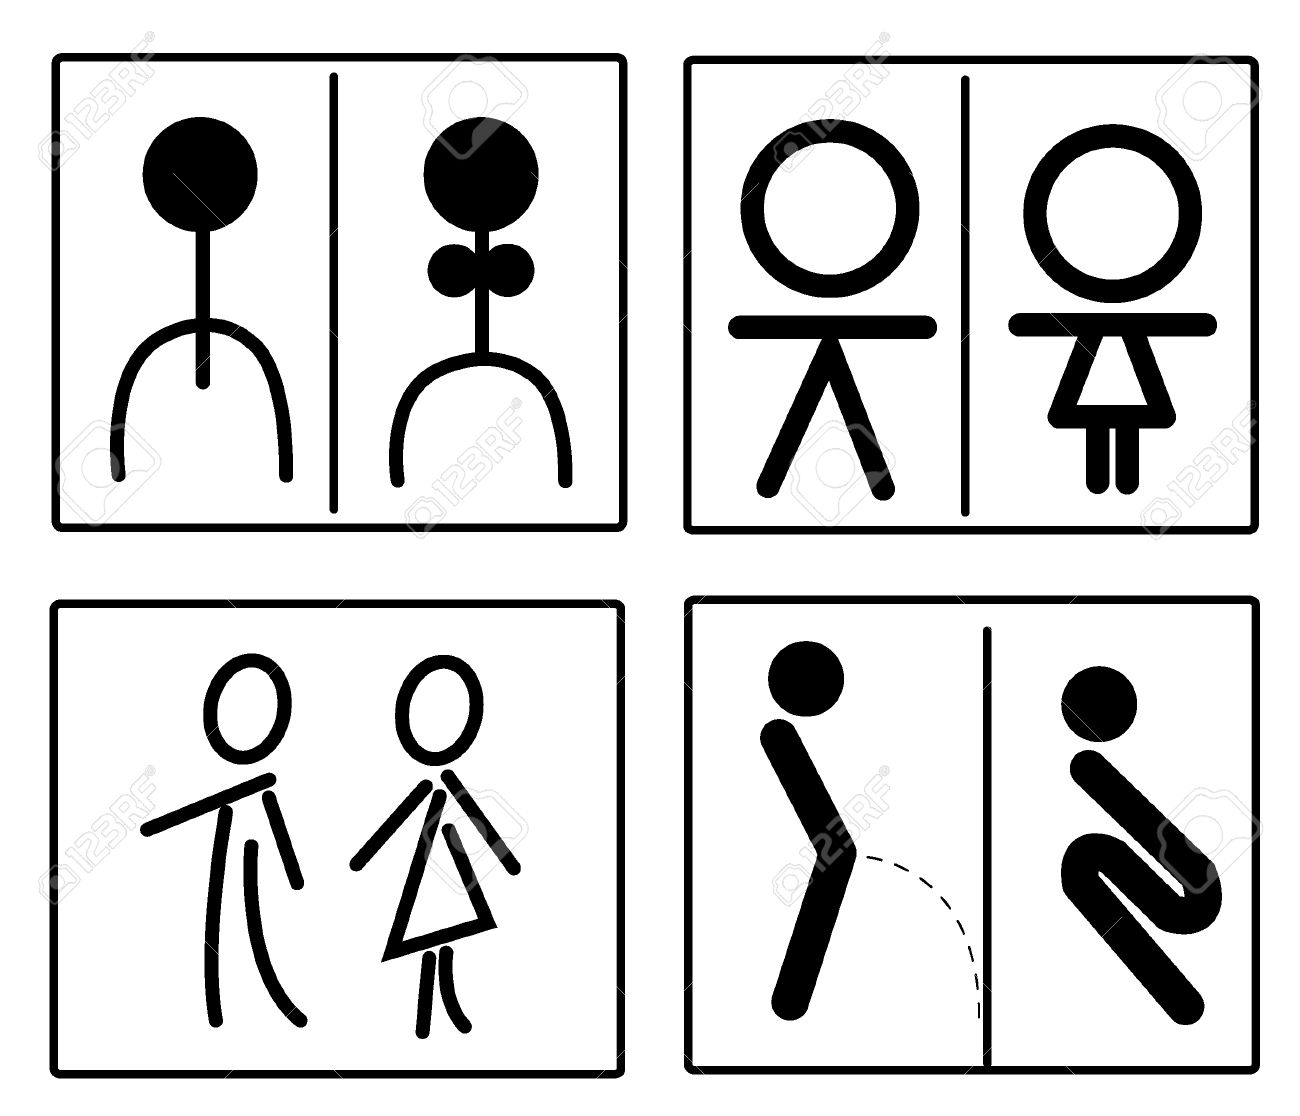 Bathroom Signs Vector Free delighful bathroom sign vector a toilet people symbolvector in